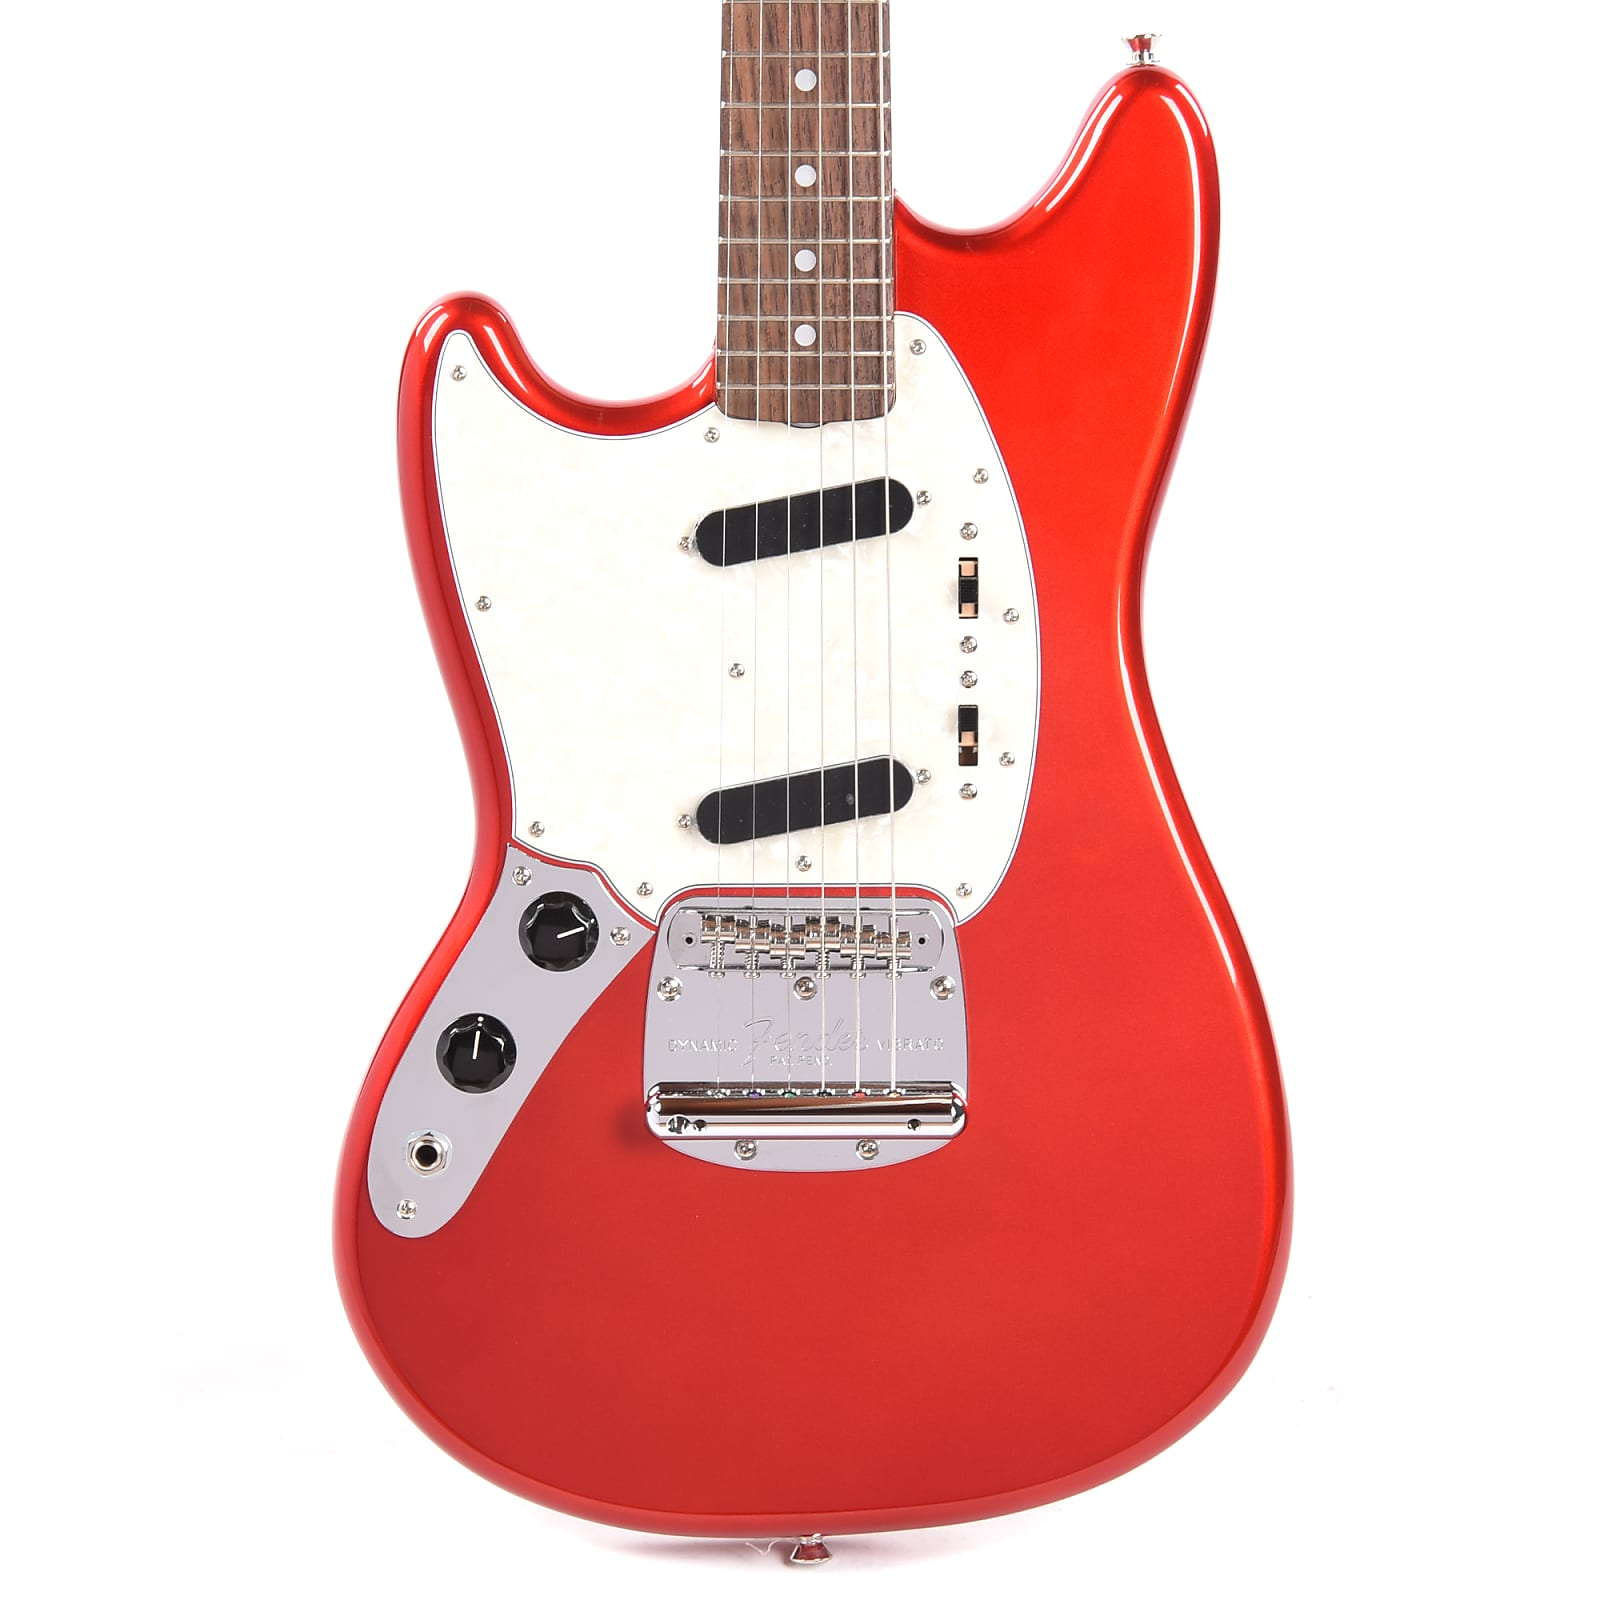 Fender MIJ Traditional 60s Mustang Candy Apple Red LEFTY w/Matching Headcap (CME Exclusive)